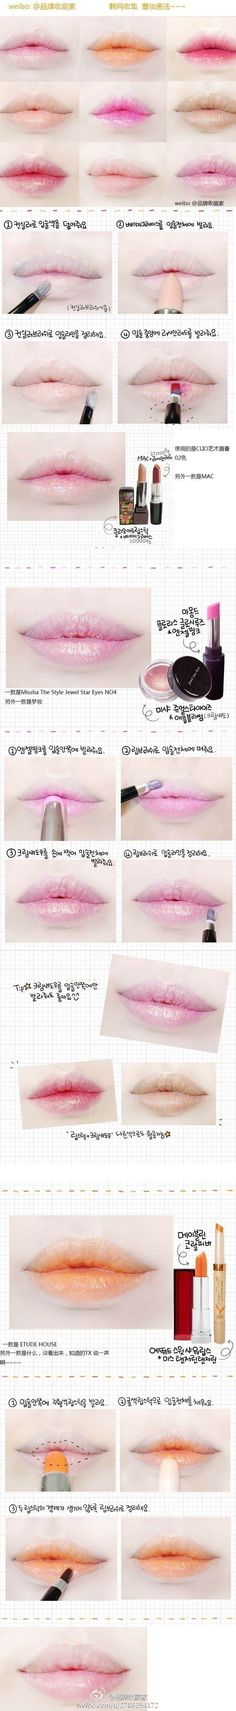 "Gradient lips give that ""just ate a popsicle"" adorable look that can be part of your daily make up. So cute ❤"